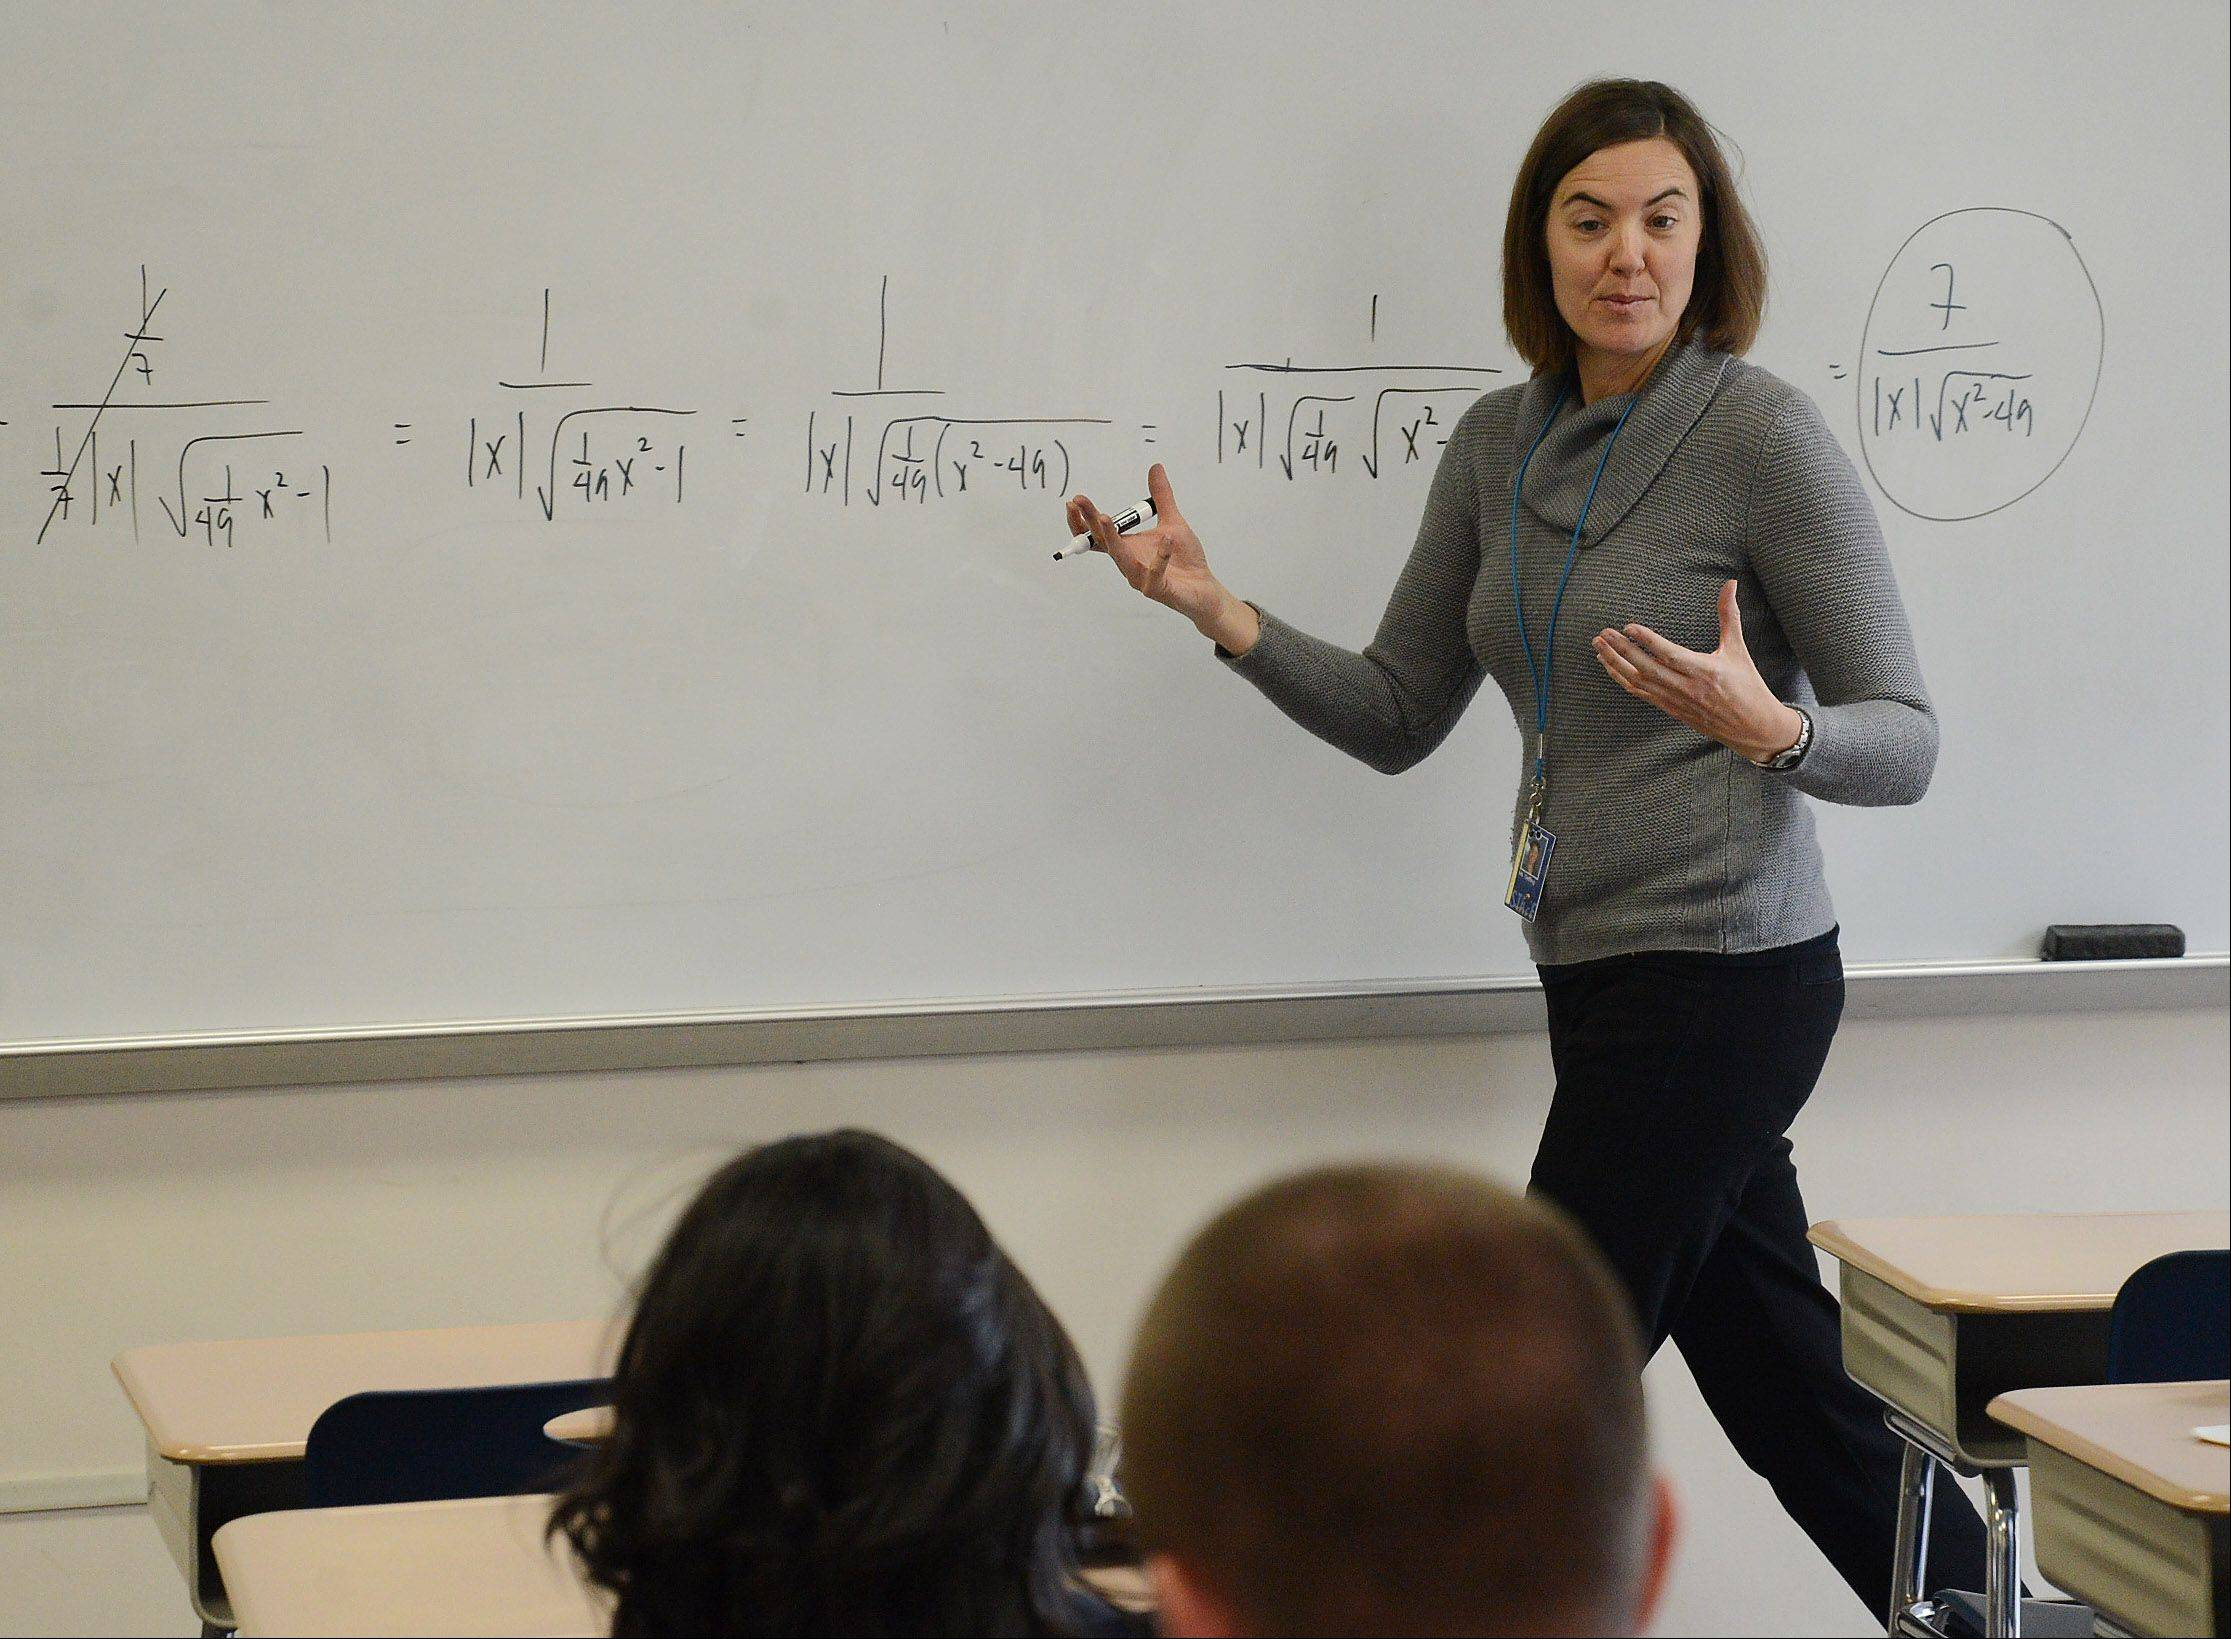 Calculus teacher Laura Oeffling leads her class at Warren Township High School's Almond Road campus in Gurnee for juniors and seniors. Warren improved its Prairie State Achievement Exam composite score on this year's state report card.